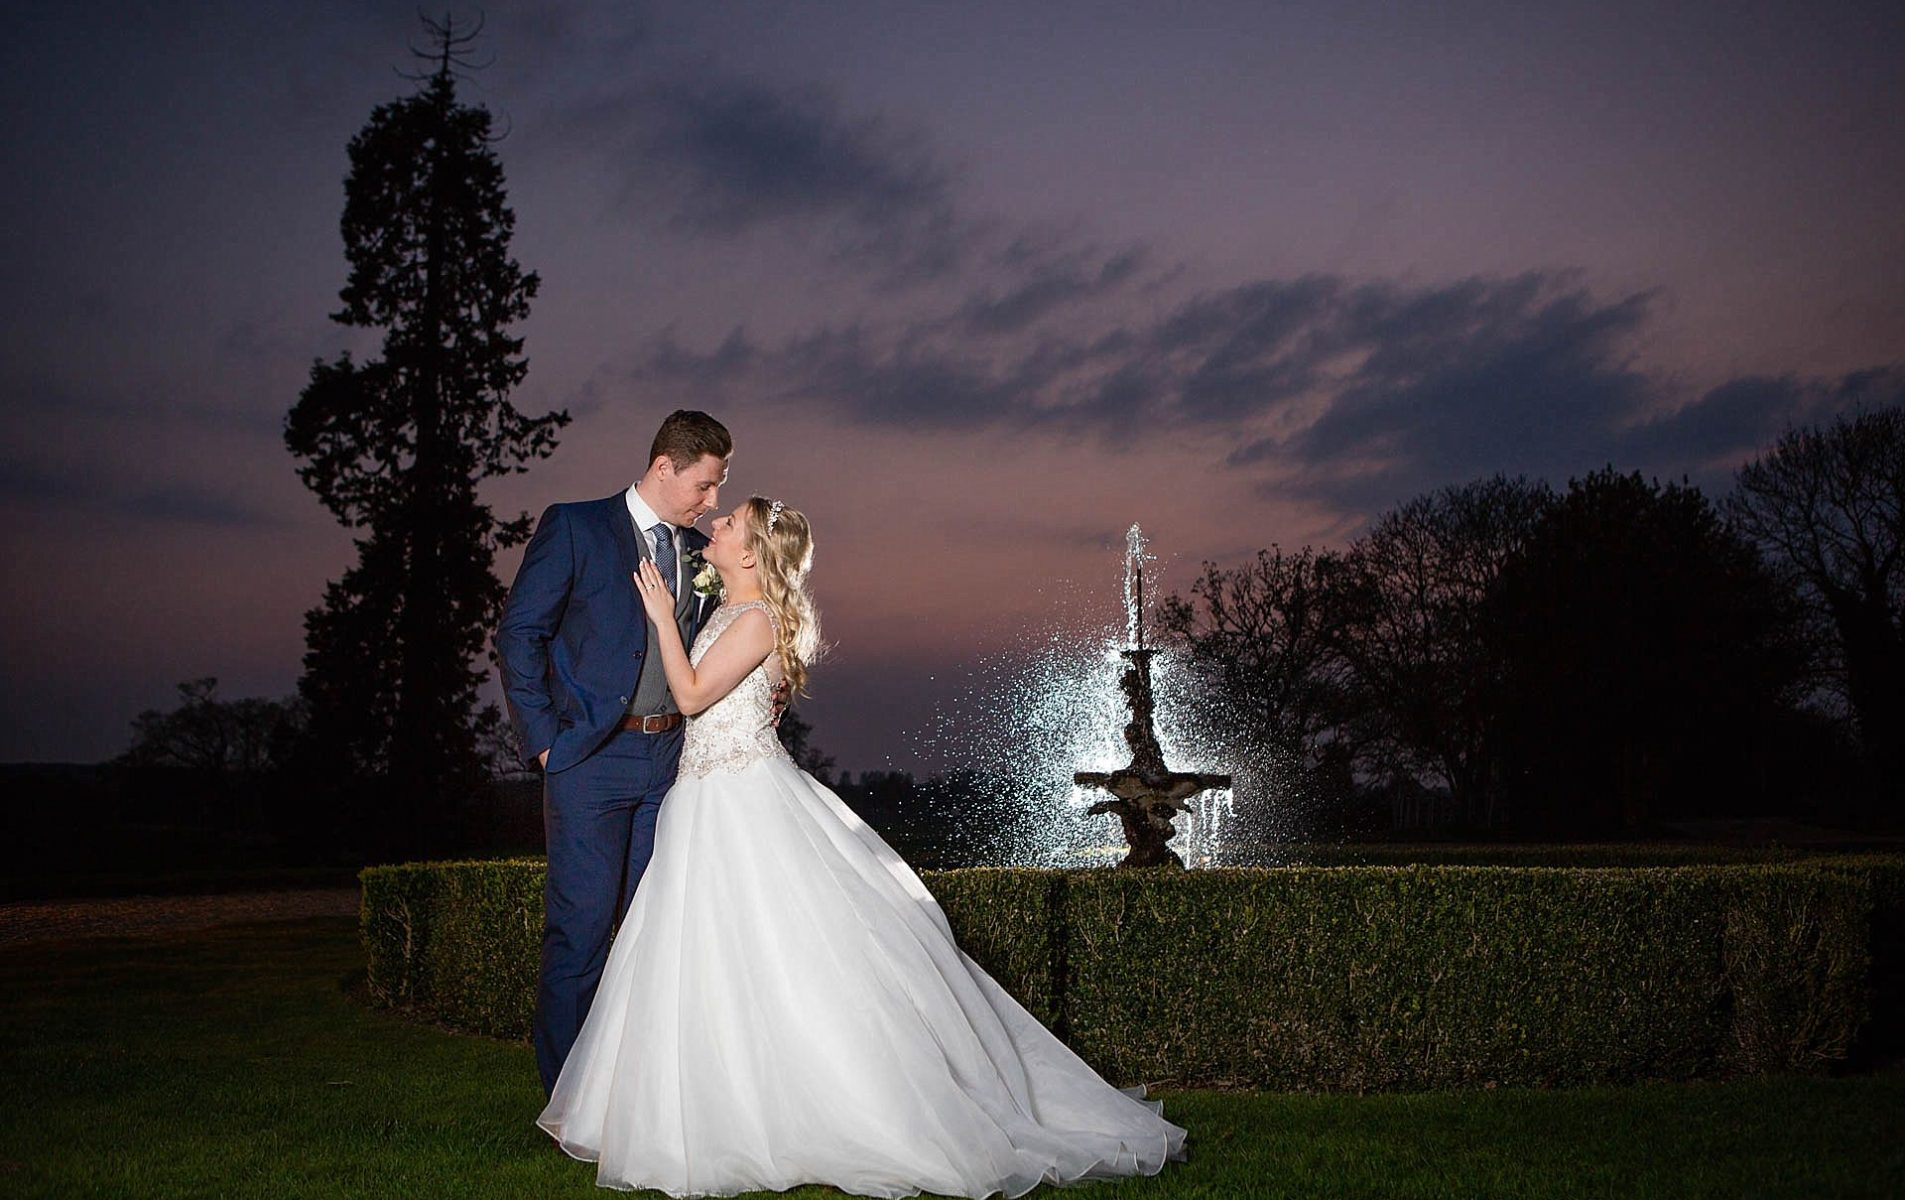 Gosfield Hall Wedding - Emily and Callum